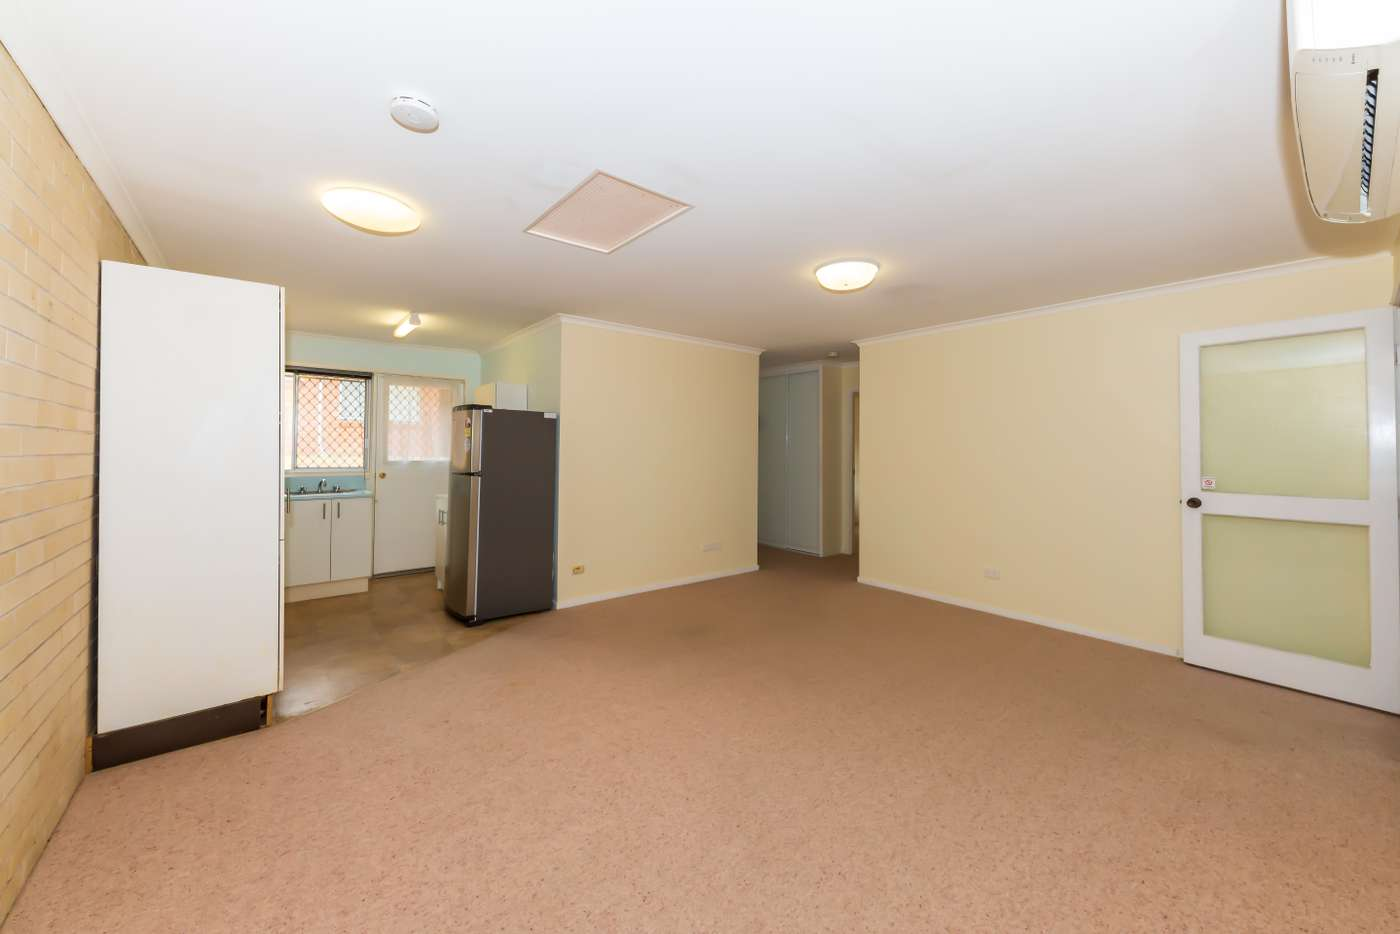 Sixth view of Homely unit listing, 42/11 West Dianne Street, Lawnton QLD 4501